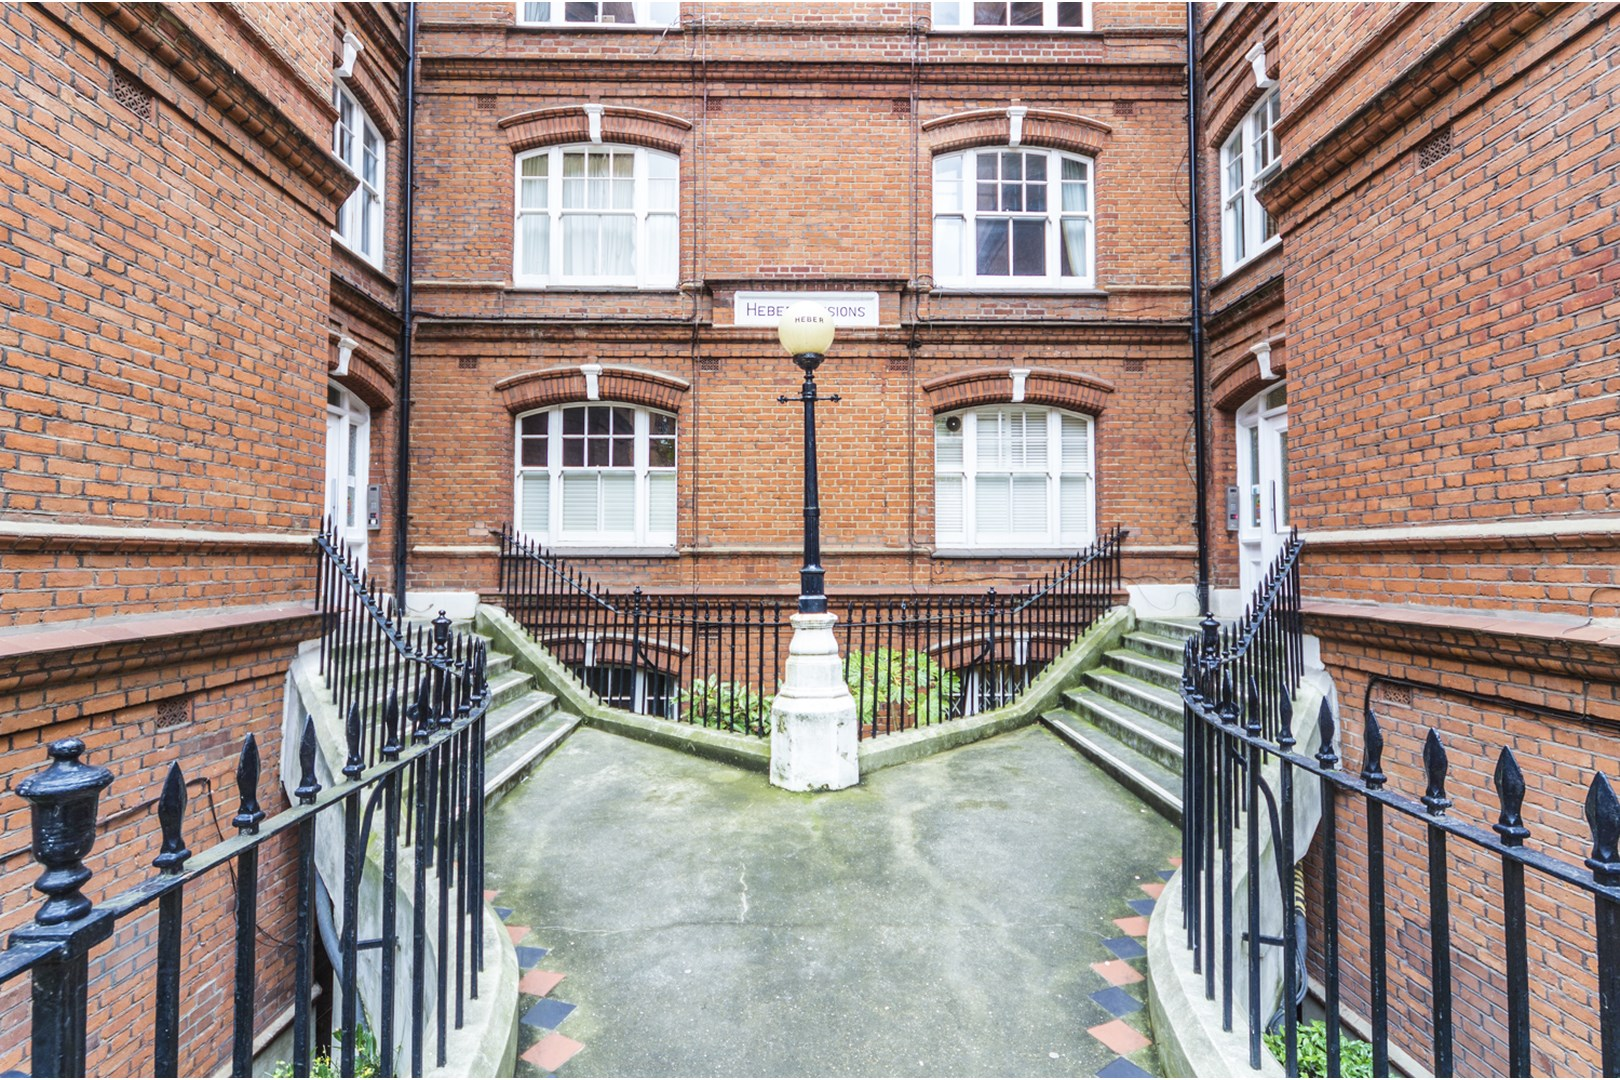 2 Bedroom Garden Flat London 2 Bedroom Flat For Sale In Queen 39s Club Gardens Fulham